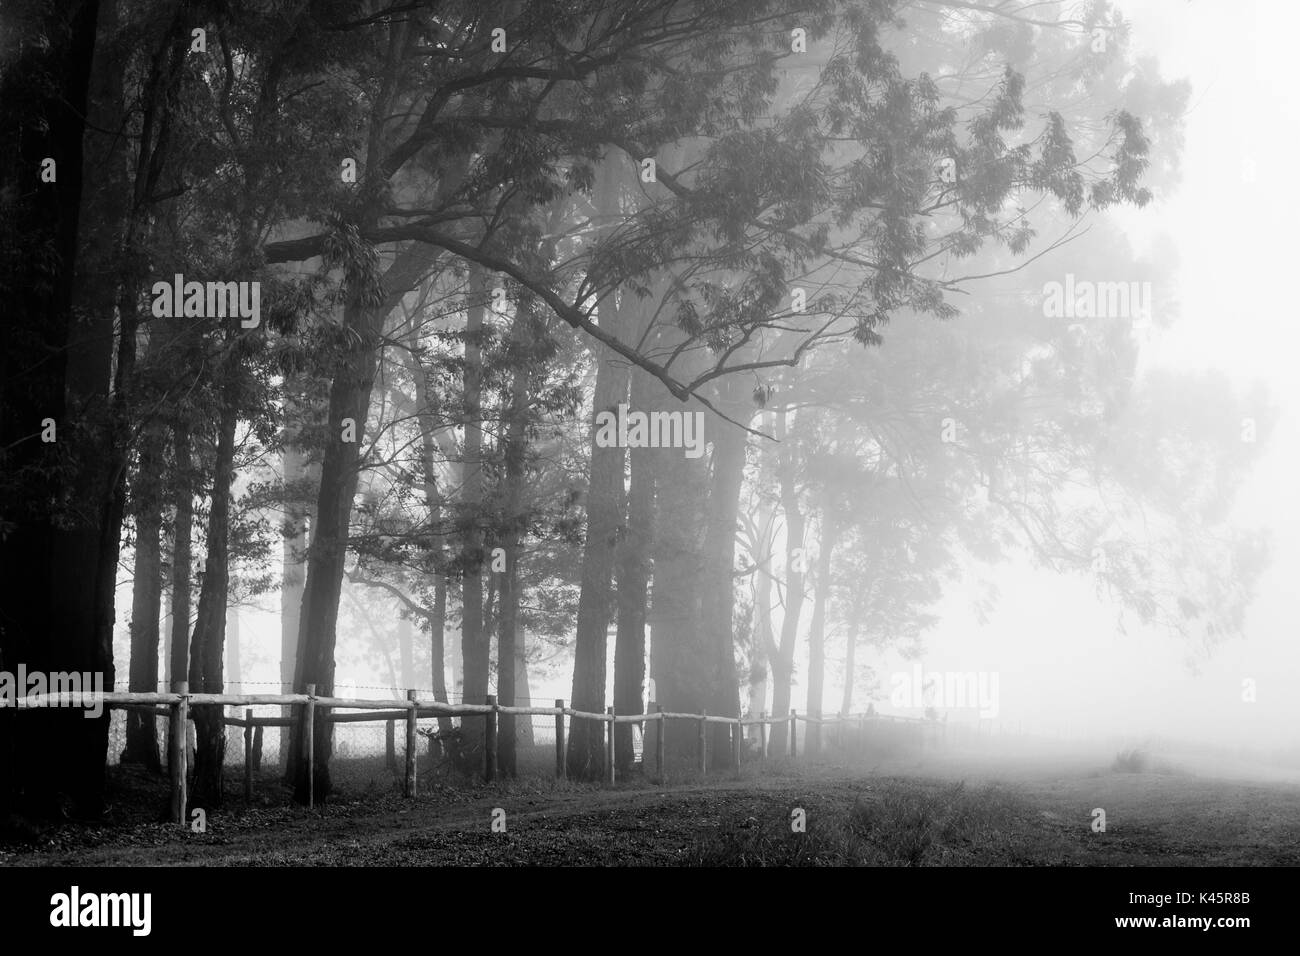 Trees, Kyber Pass, Karkloof Valley, KwaZulu Natal, Republic of South Africa. Giant Eucalyptus in the mist. - Stock Image